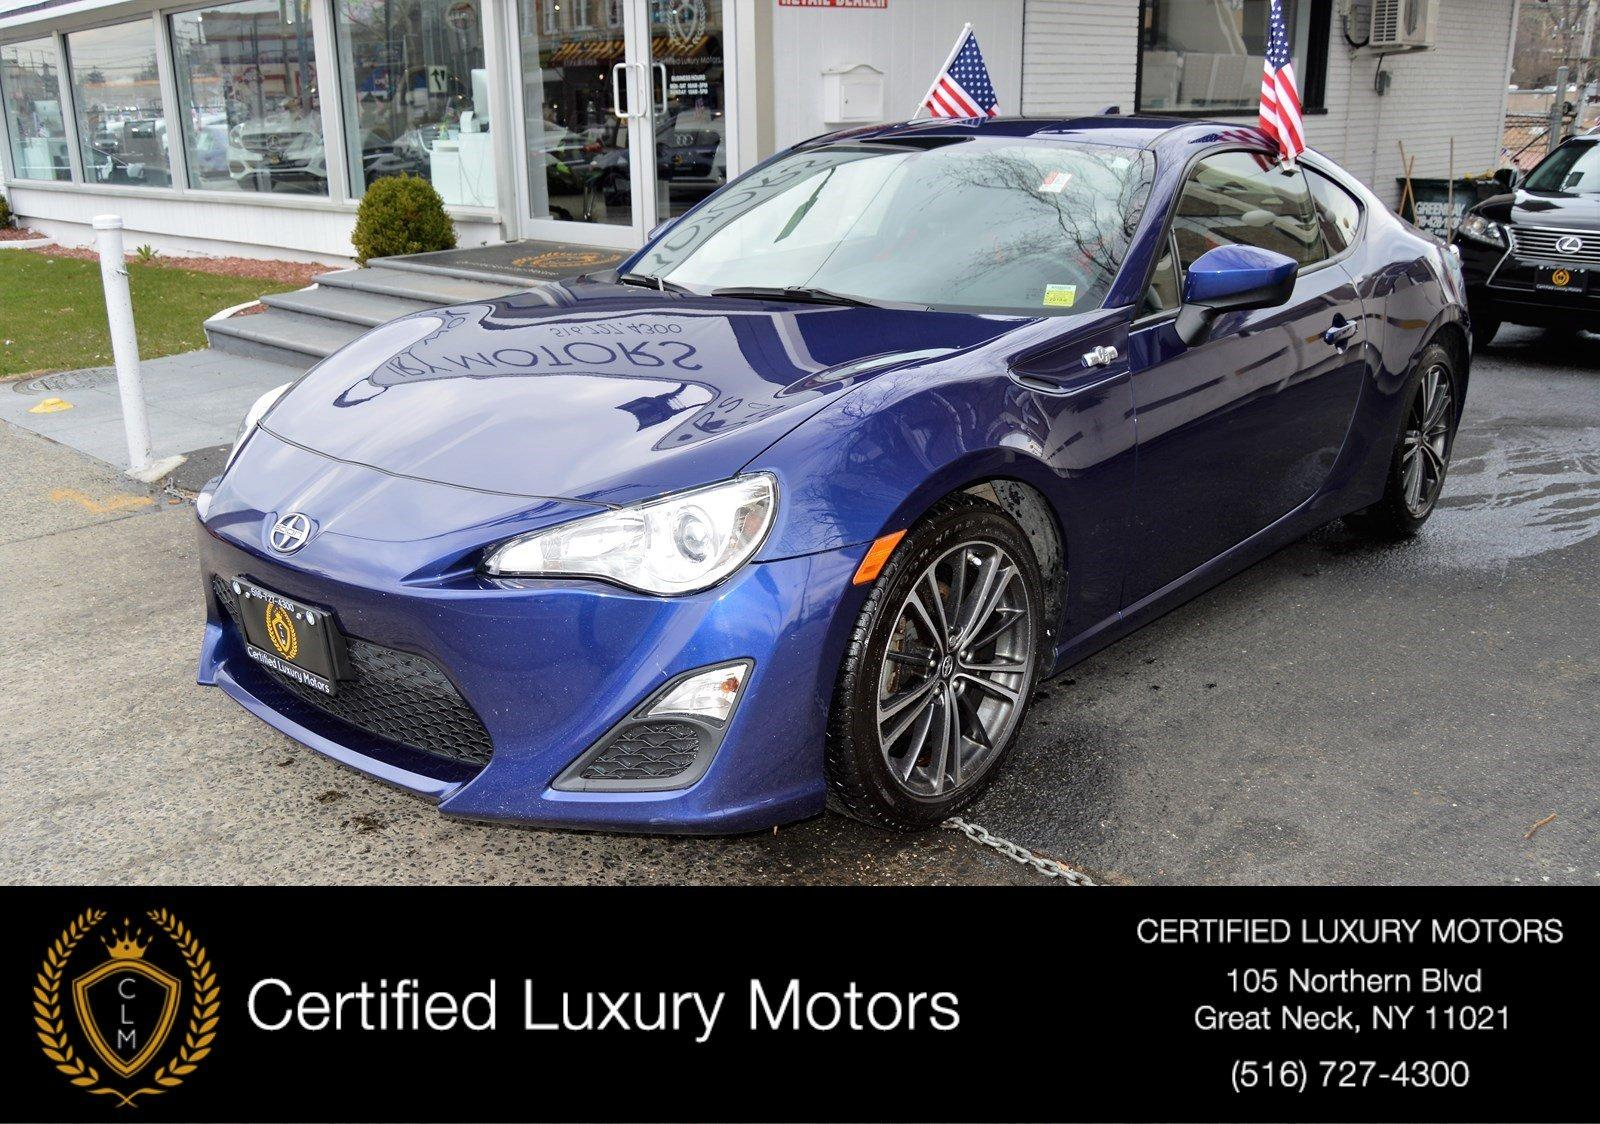 2016 scion fr s release series 2 0 stock 2962 for sale near great neck ny ny scion dealer. Black Bedroom Furniture Sets. Home Design Ideas